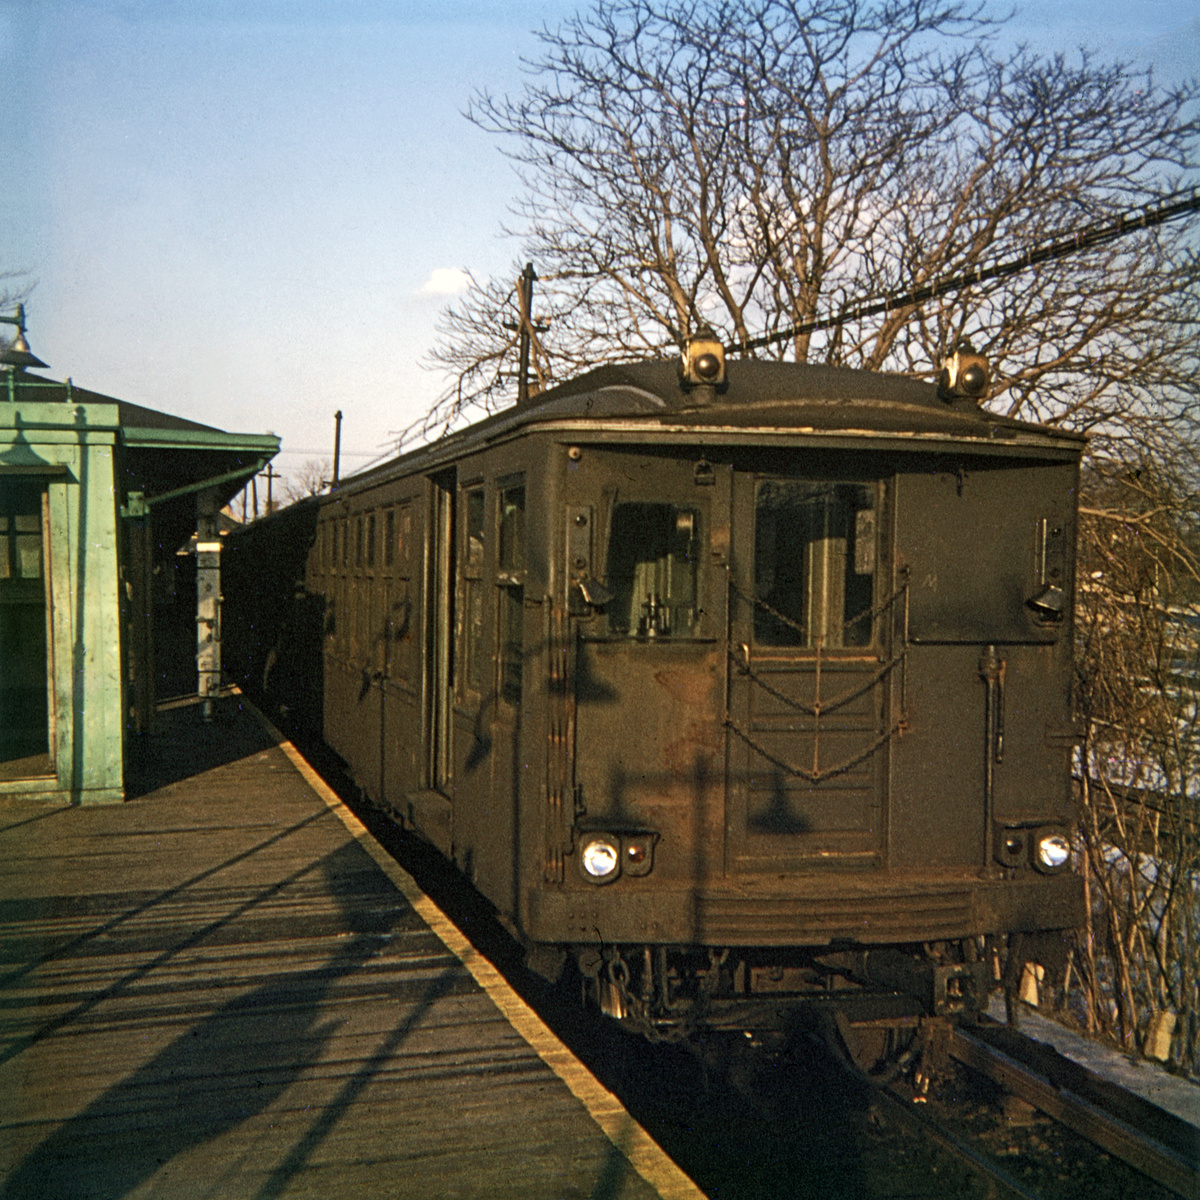 (530k, 1044x849)<br><b>Country:</b> United States<br><b>City:</b> New York<br><b>System:</b> New York City Transit<br><b>Line:</b> BMT Myrtle Avenue Line<br><b>Location:</b> Metropolitan Avenue <br><b>Car:</b> BMT Q  <br><b>Photo by:</b> Steve Hoskins<br><b>Collection of:</b> David Pirmann<br><b>Date:</b> 1/1967<br><b>Viewed (this week/total):</b> 1 / 3097